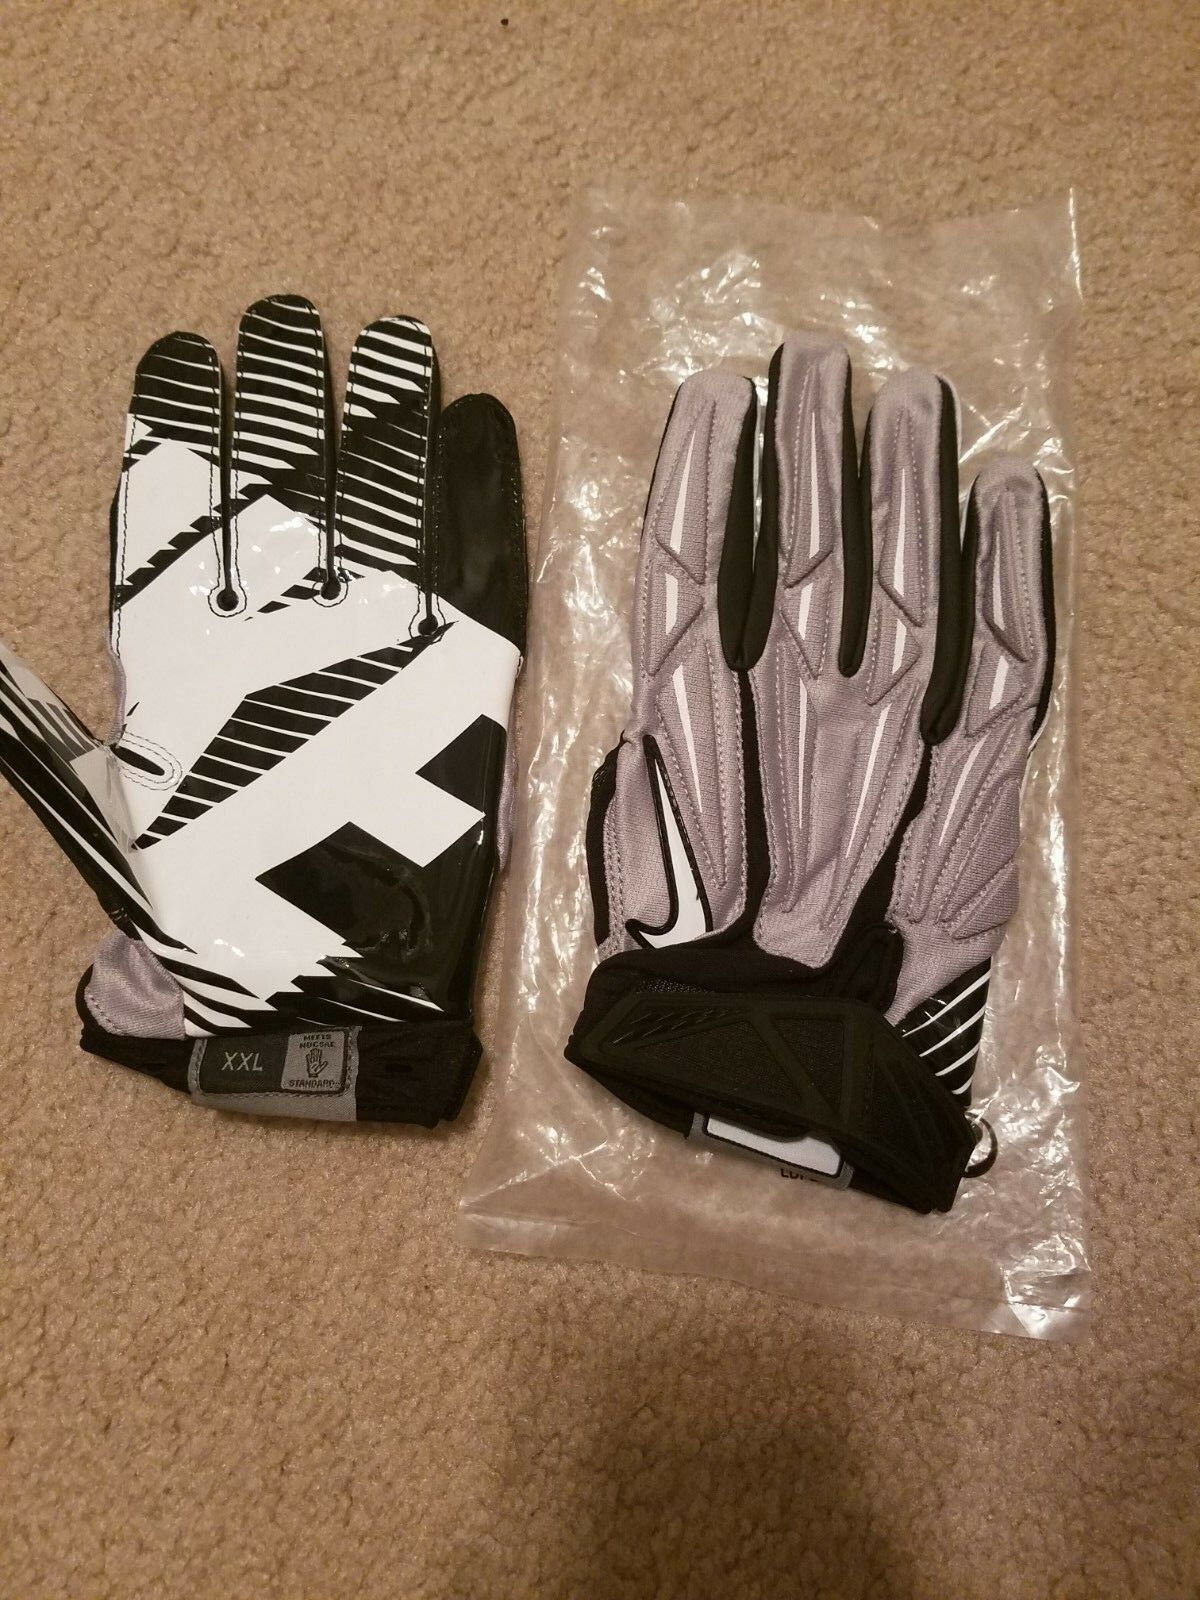 finest selection ad0ad 9ec4b NIKE SUPERBAD 2.0 ADULT HIGH-IMPACT PADDED SKILL POSITION FOOTBALL GLOVES,  NEW